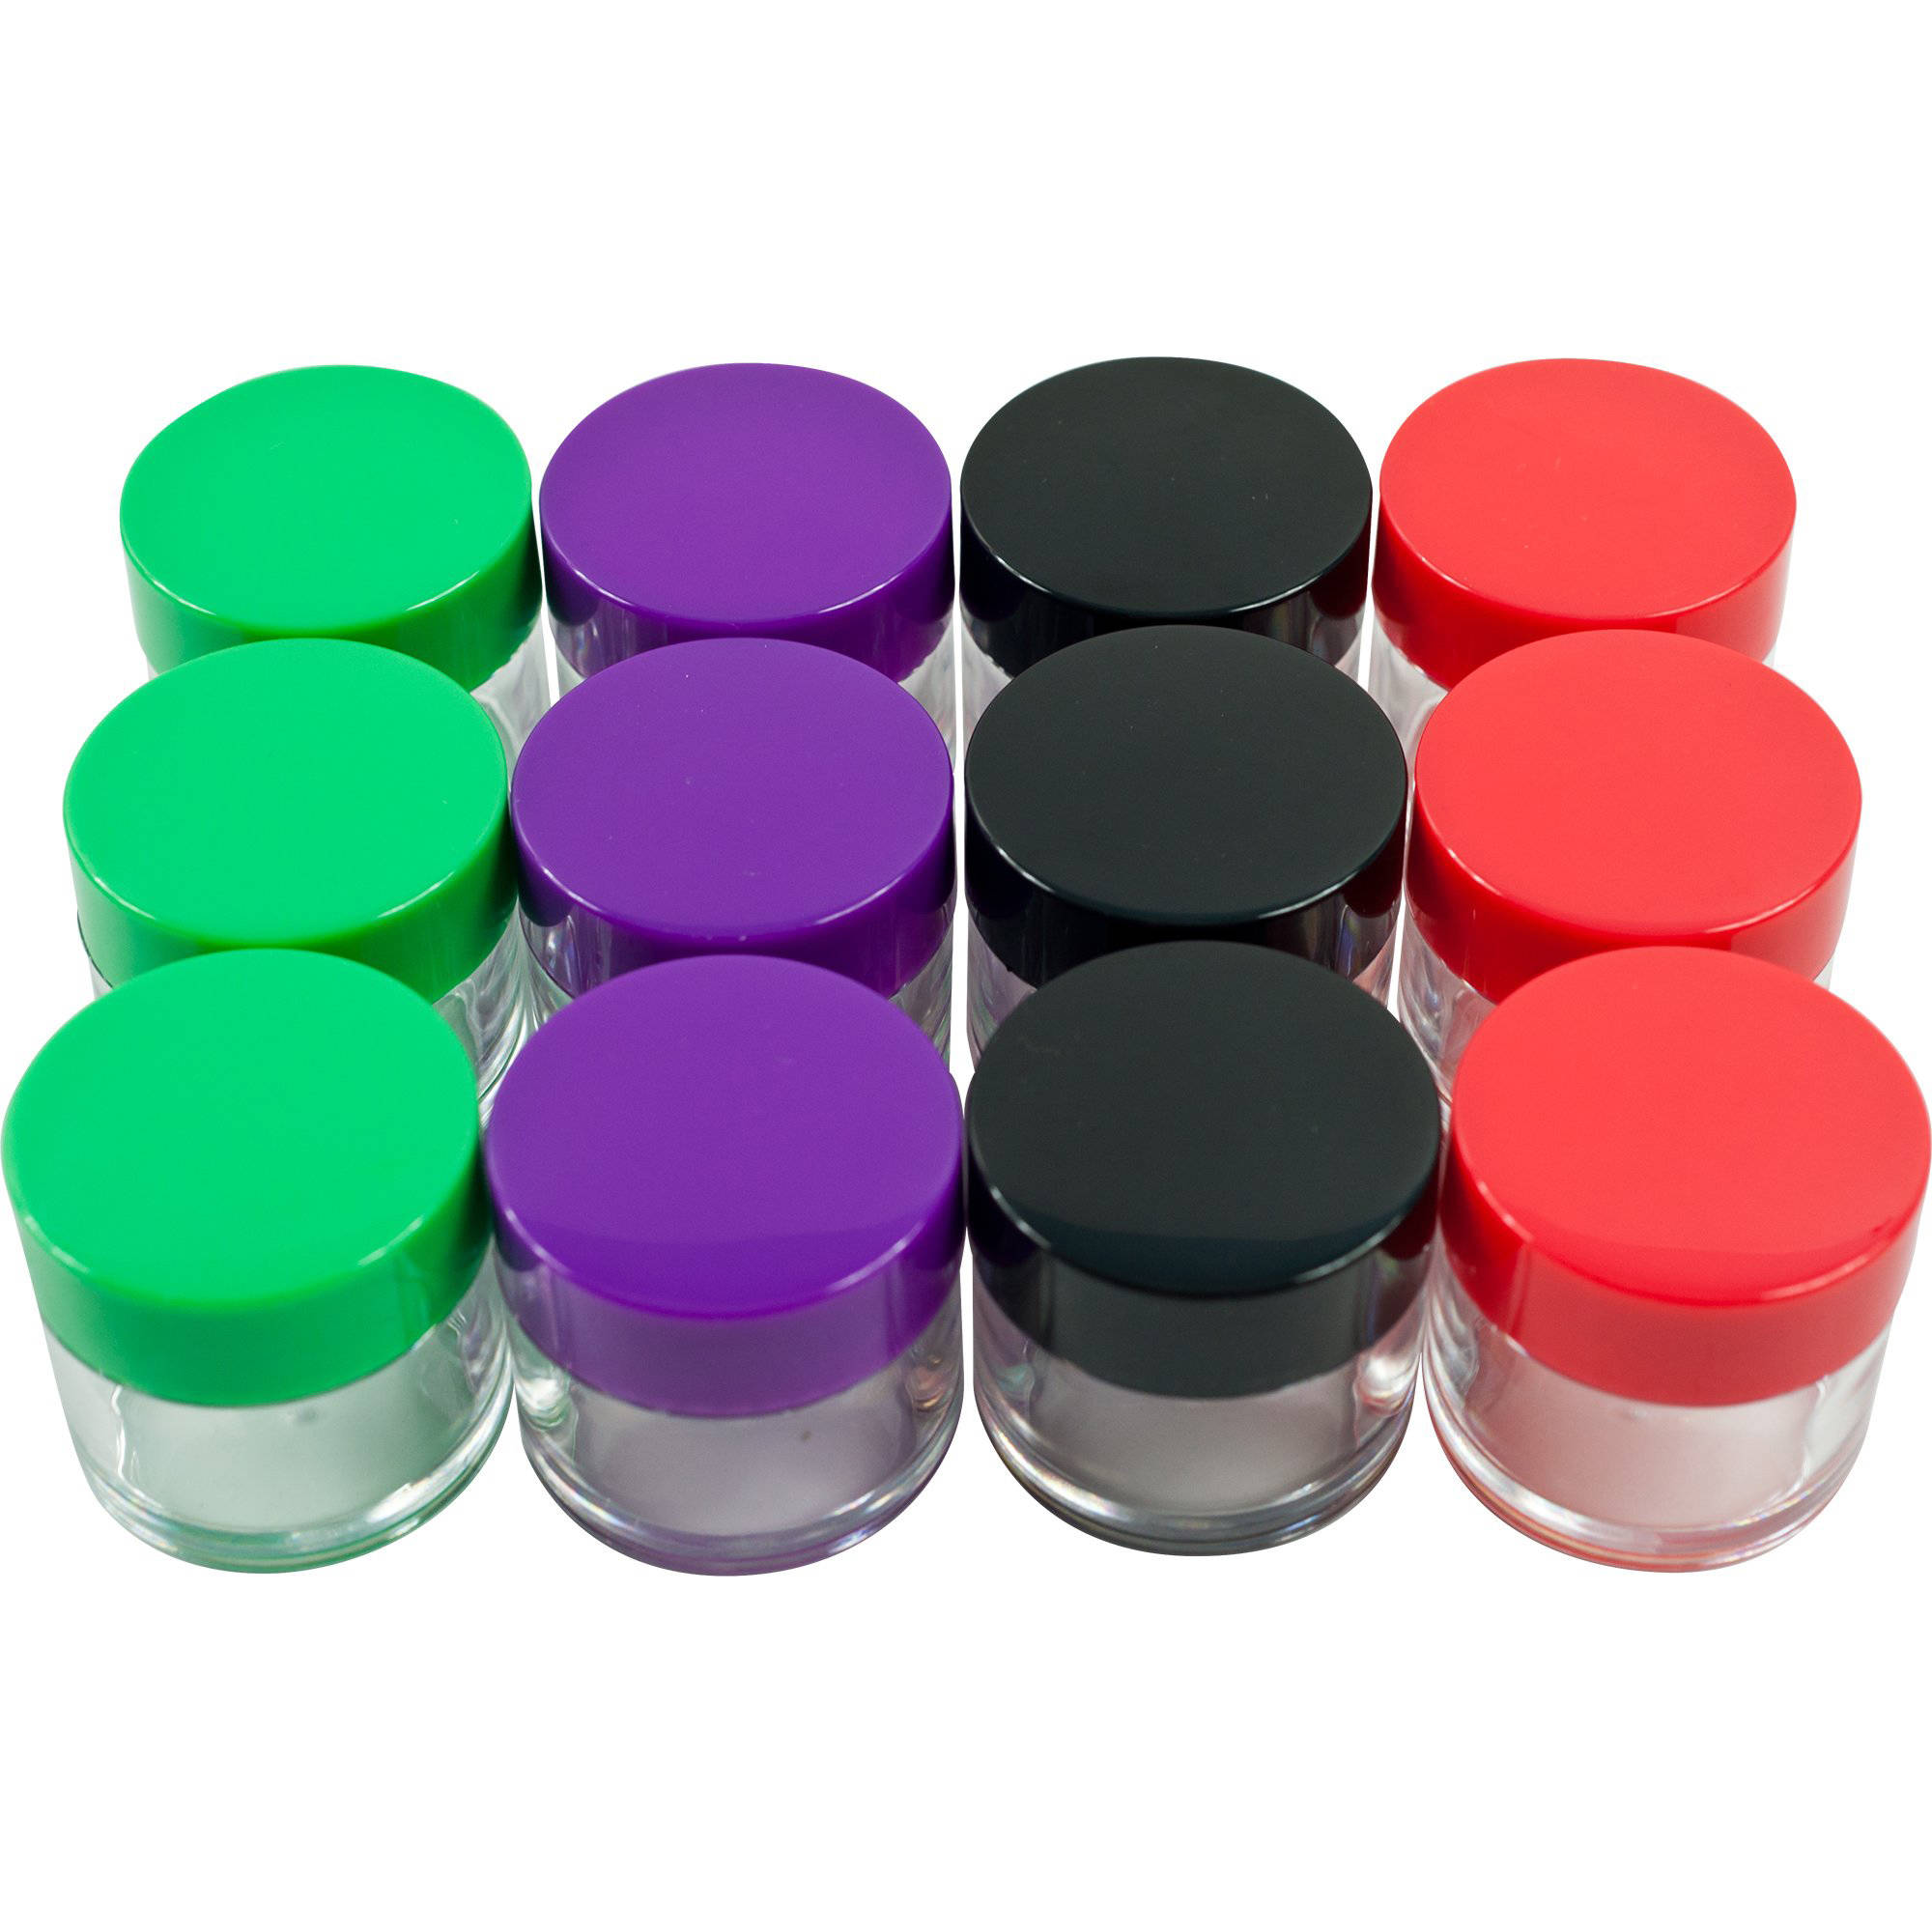 Stalwart 20ml Clear Storage Jars, Colored Lids, 12-Piece